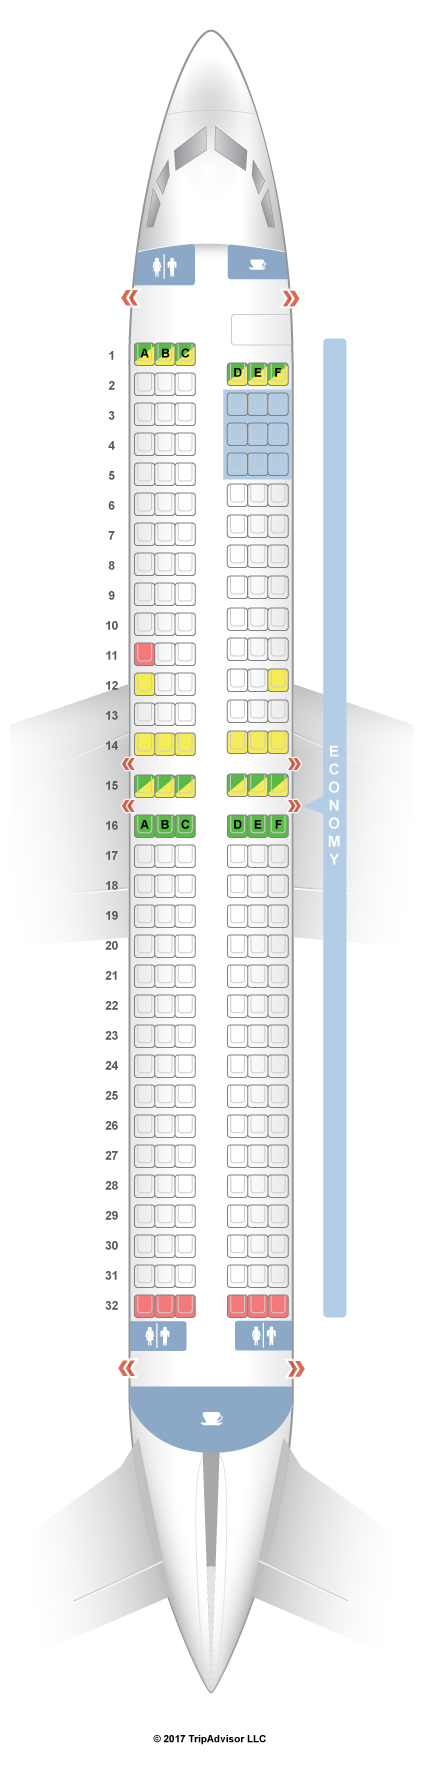 737-800 Seat Map SeatGuru Seat Map Thomson Boeing 737 800 (738) 737-800 Seat Map